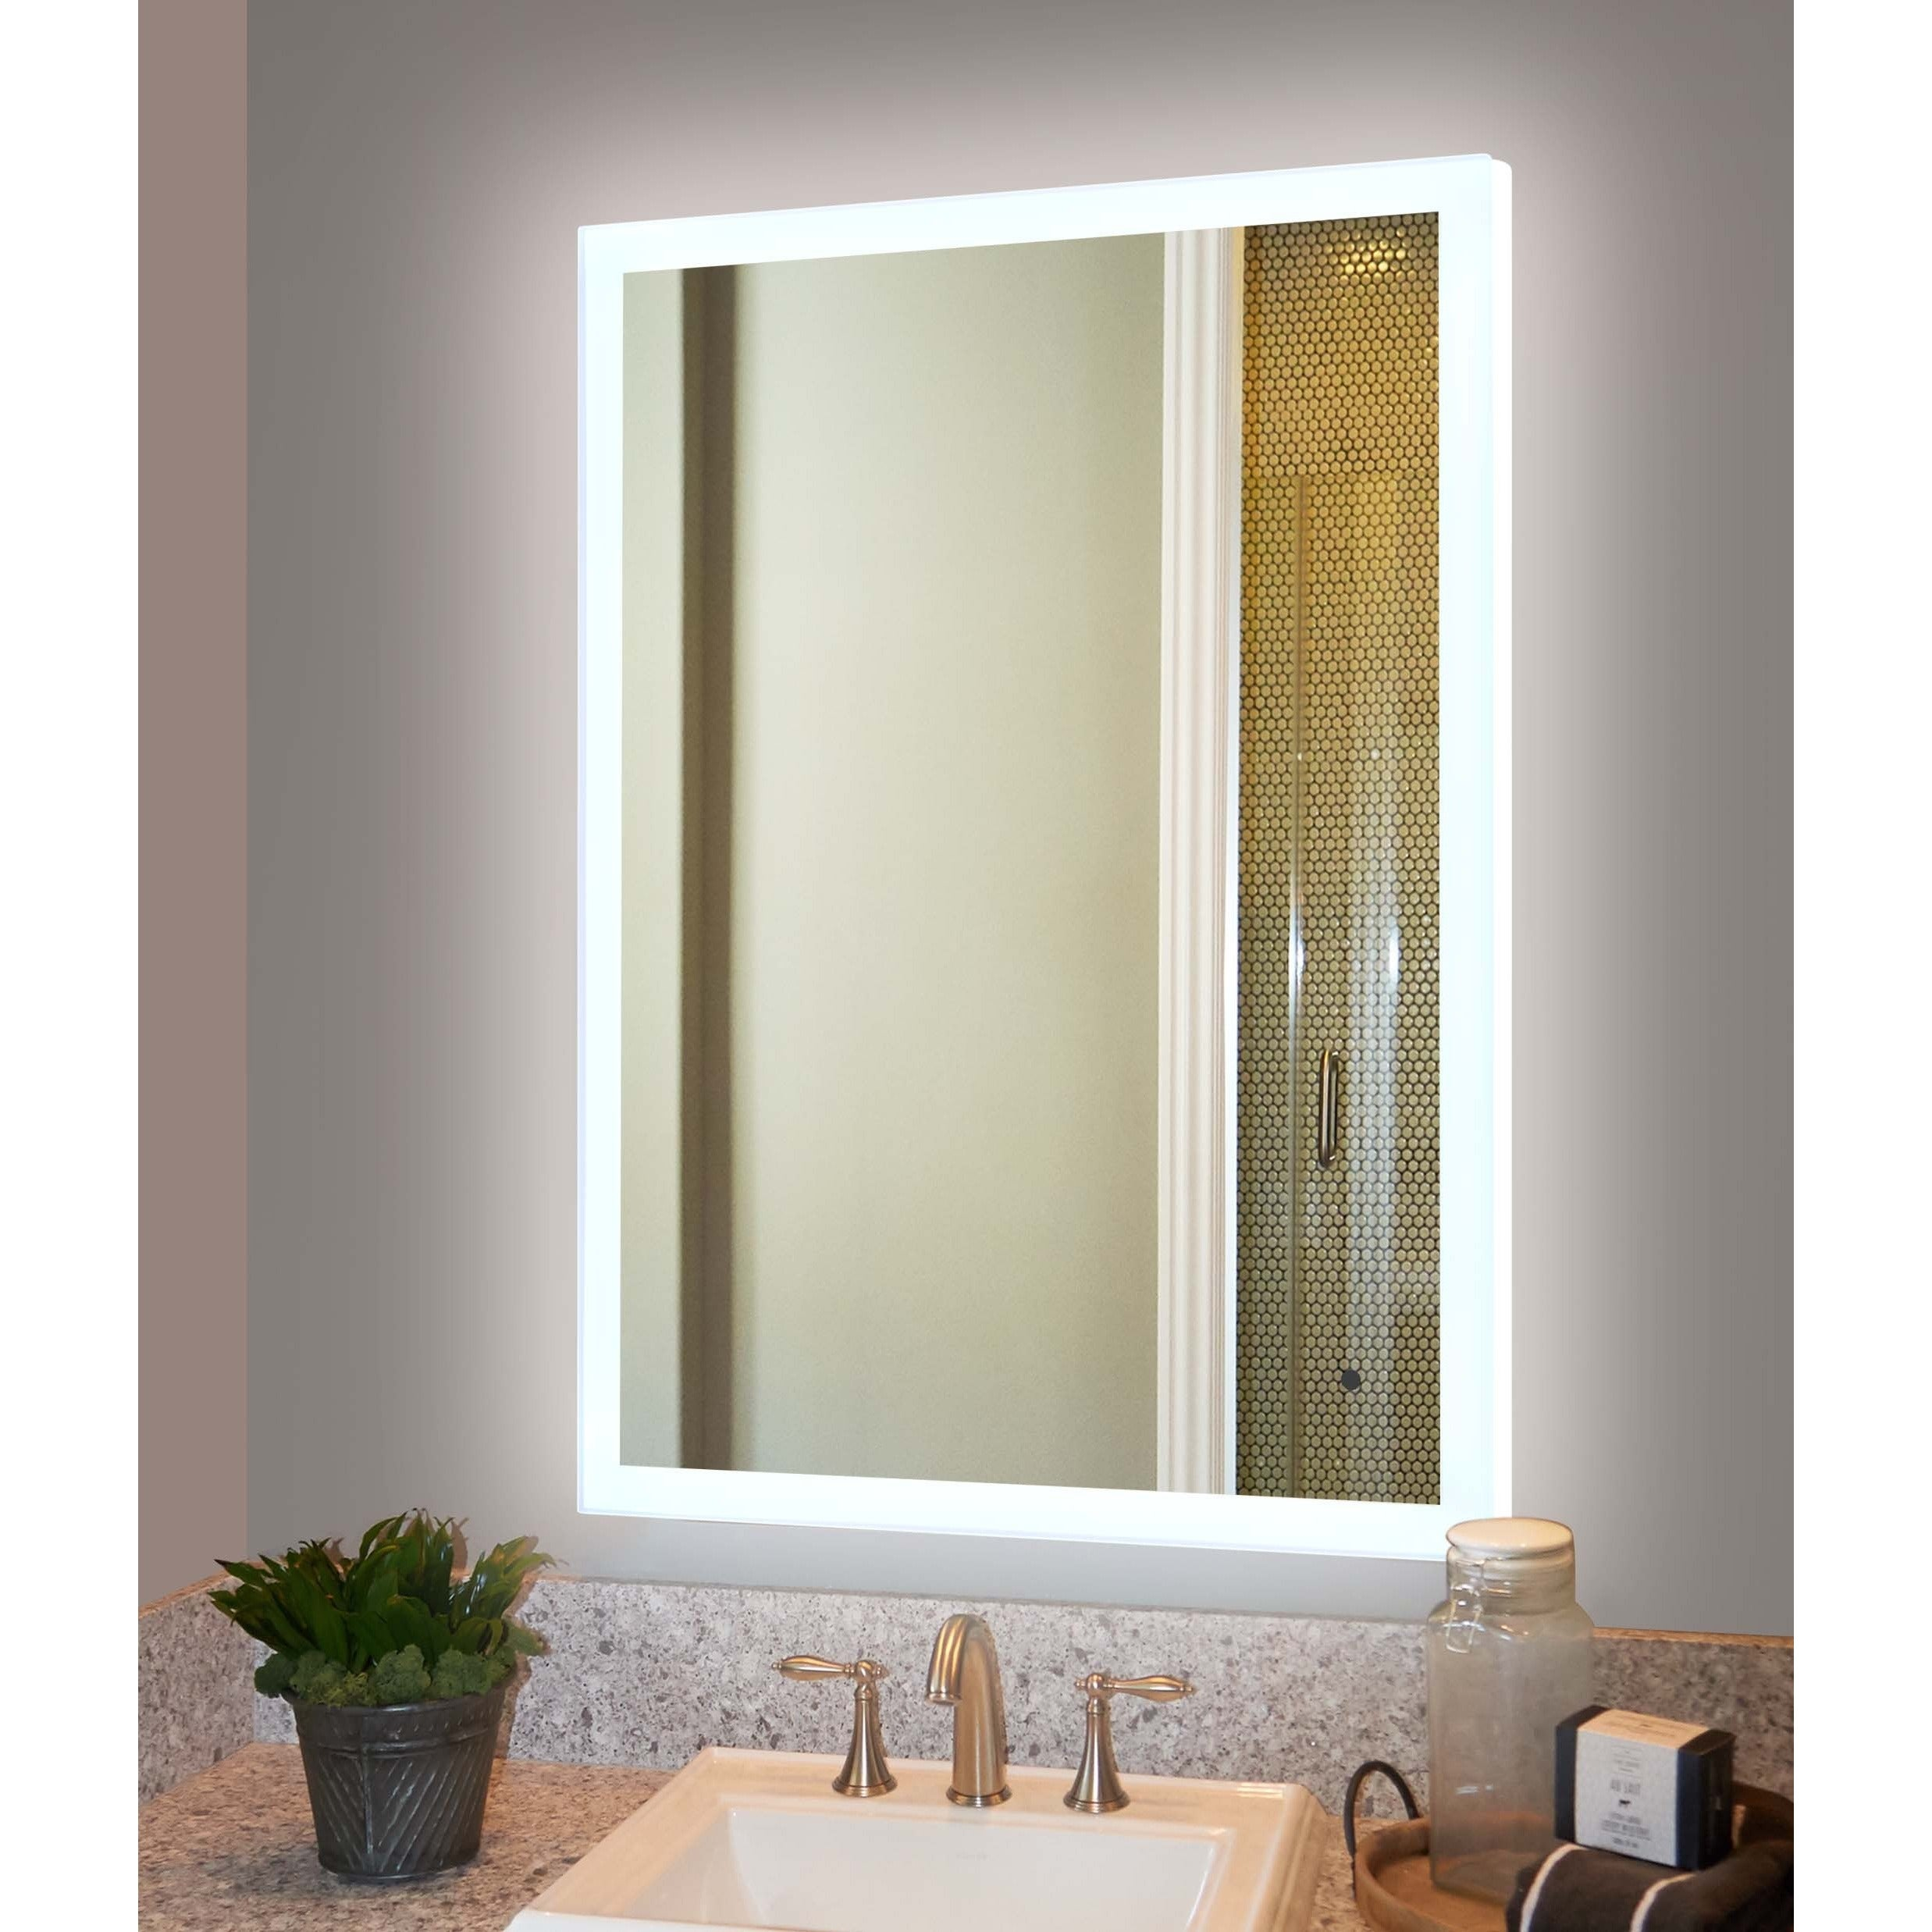 Innoci-USA Electric LED Mirror with Back Lit Lights All Around, Steel Back  Frame, and 50,000 Hour LED Bulb Life - Free Shipping Today - Overstock.com  - ...